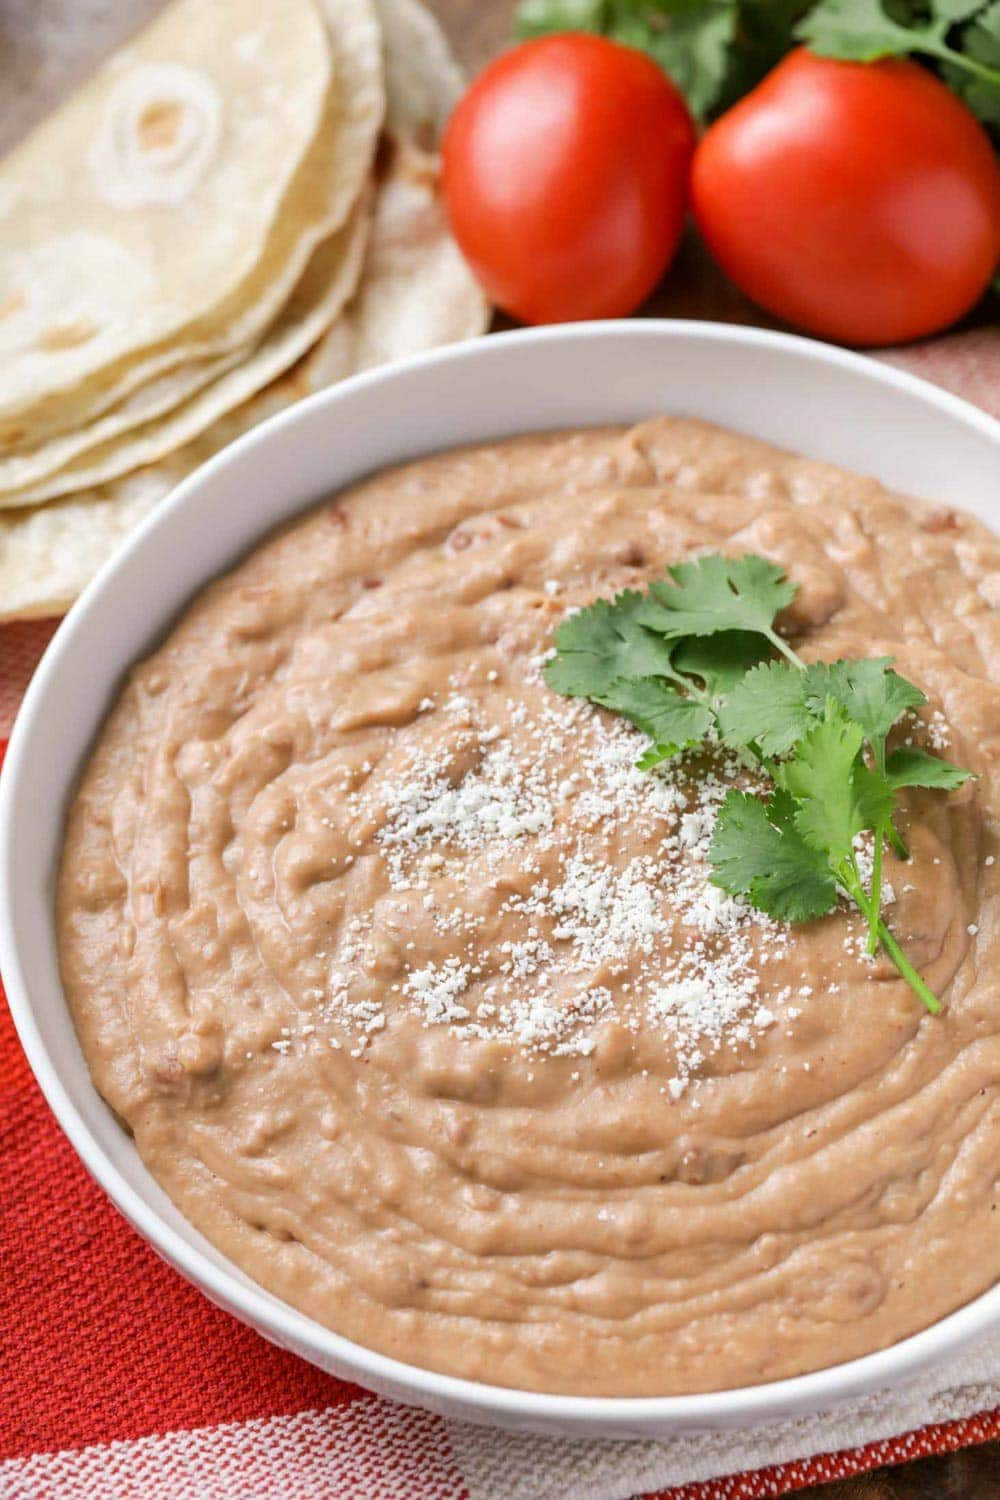 Restaurant style refried beans in a white bowl topped with cilantro